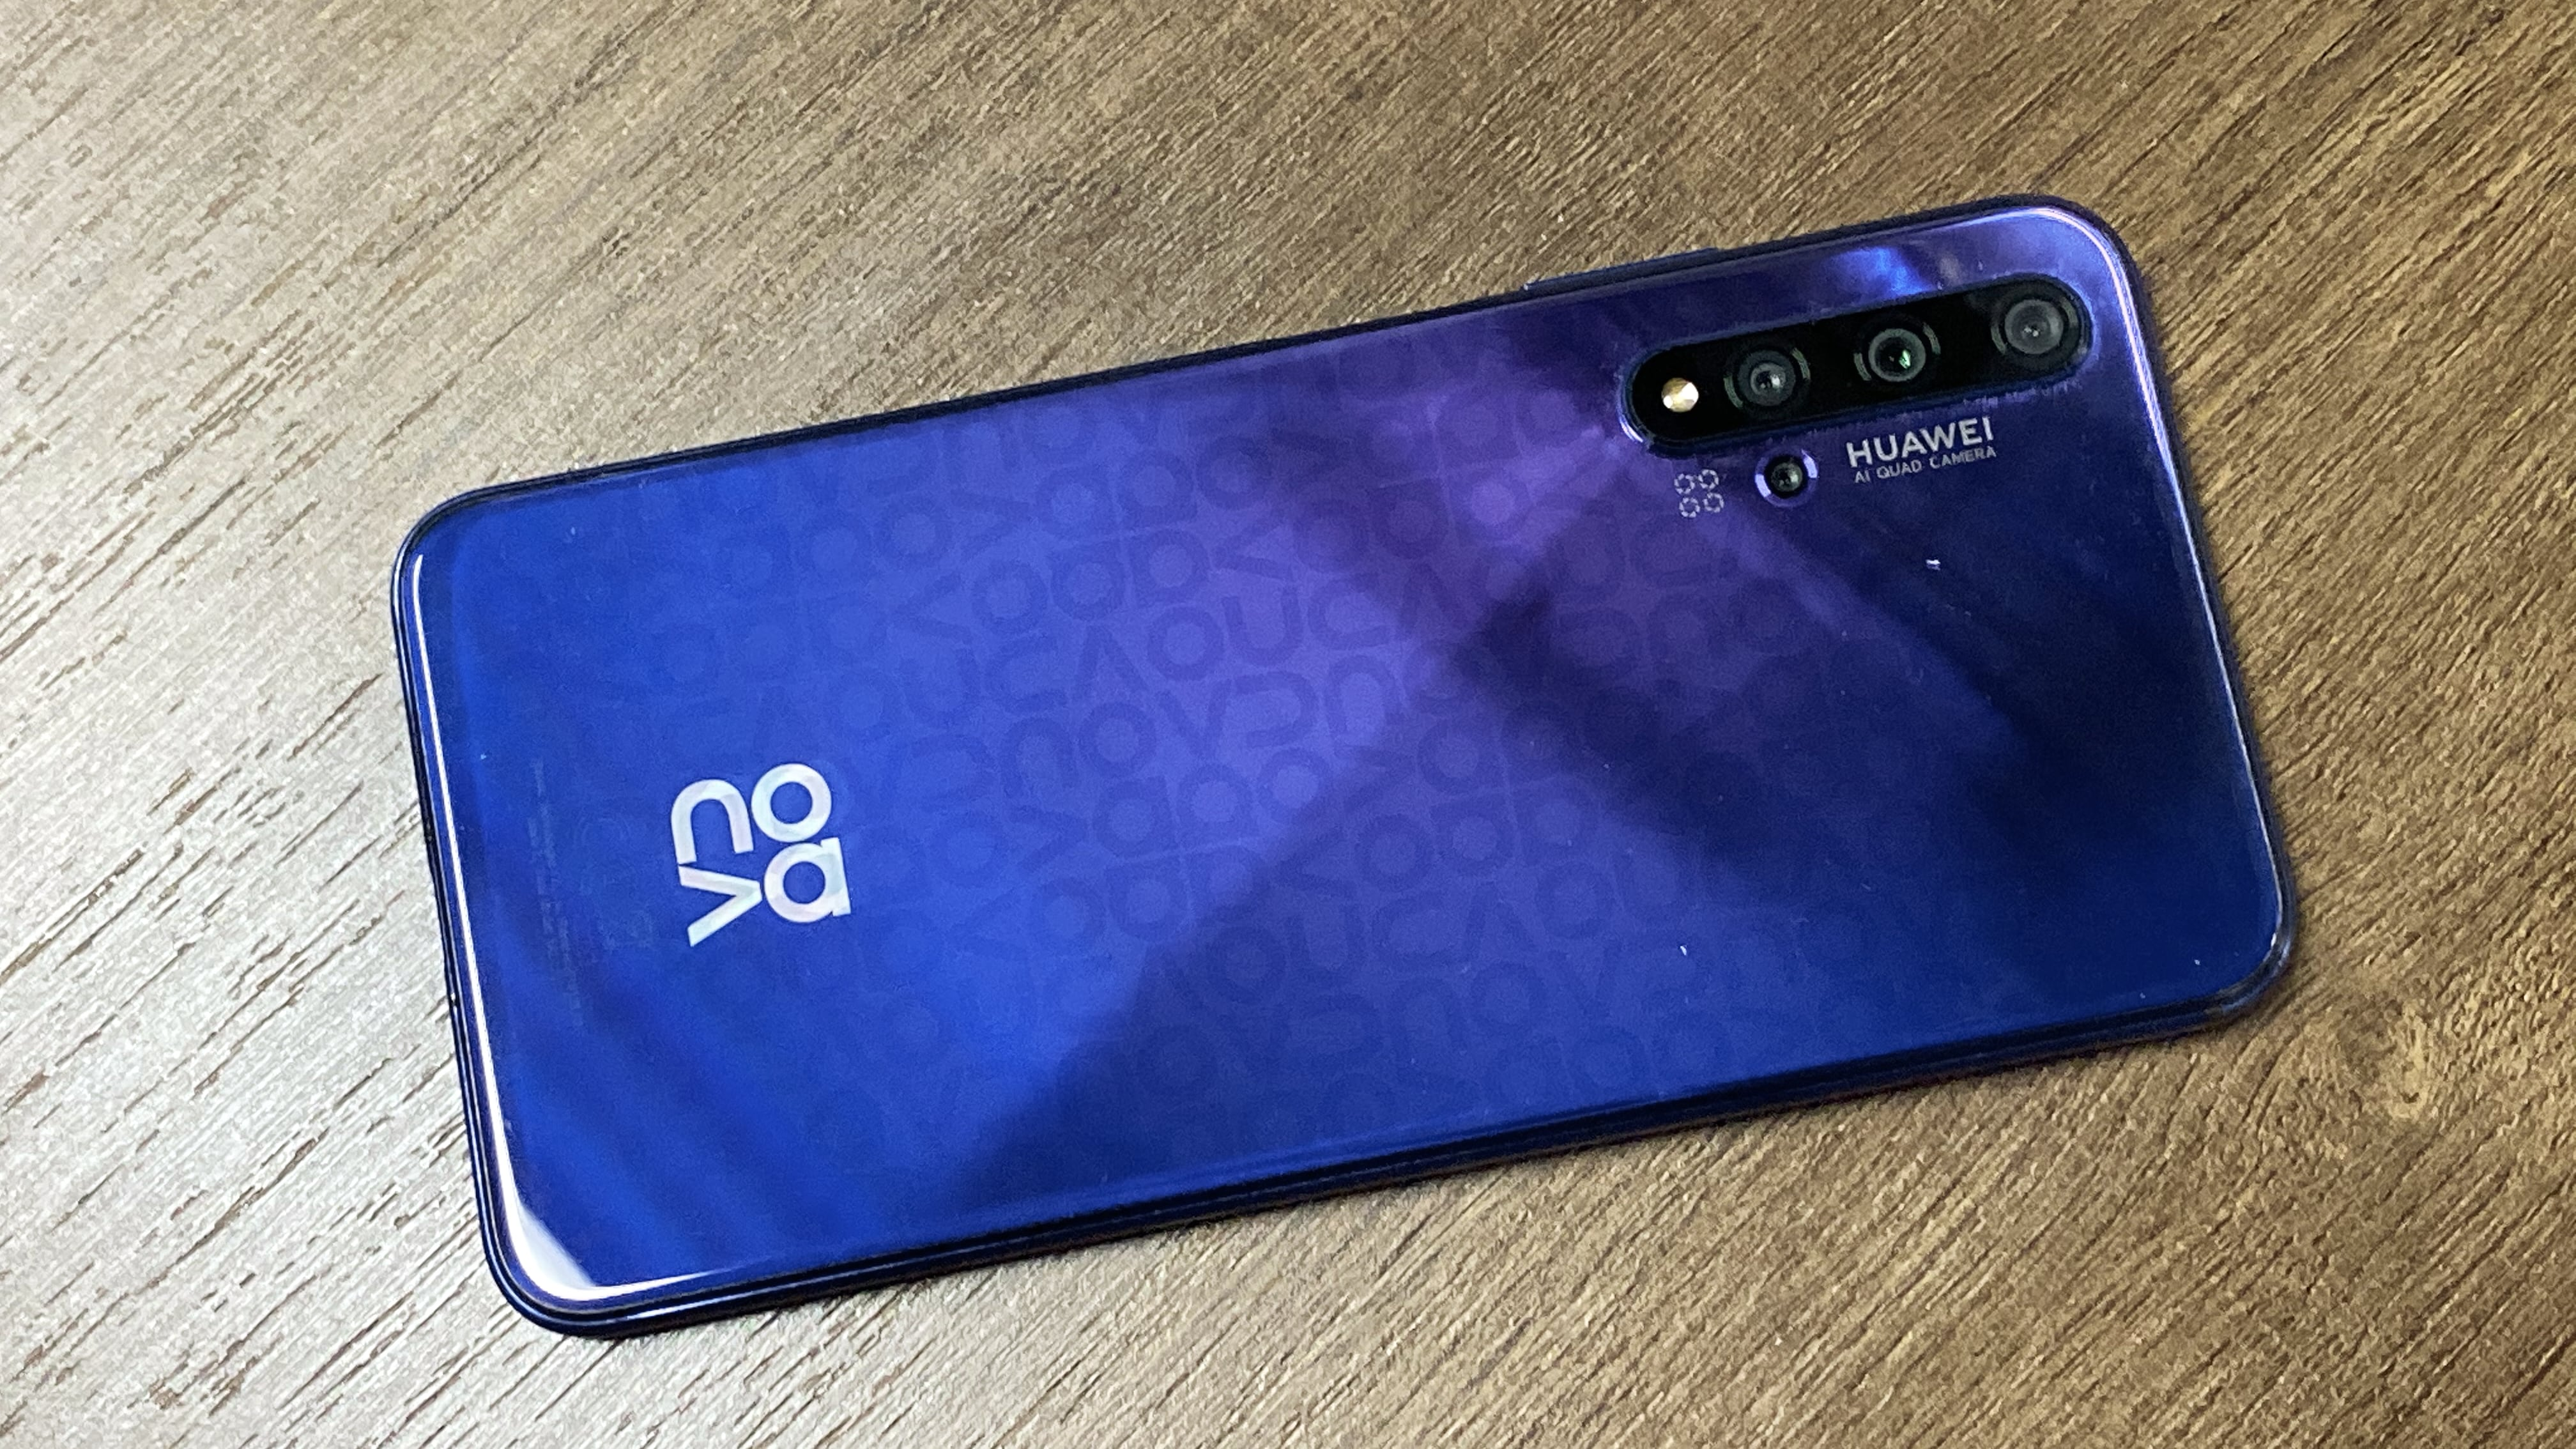 Huawei Nova 5T is the trendy flagship smartphone with 5 AI cameras